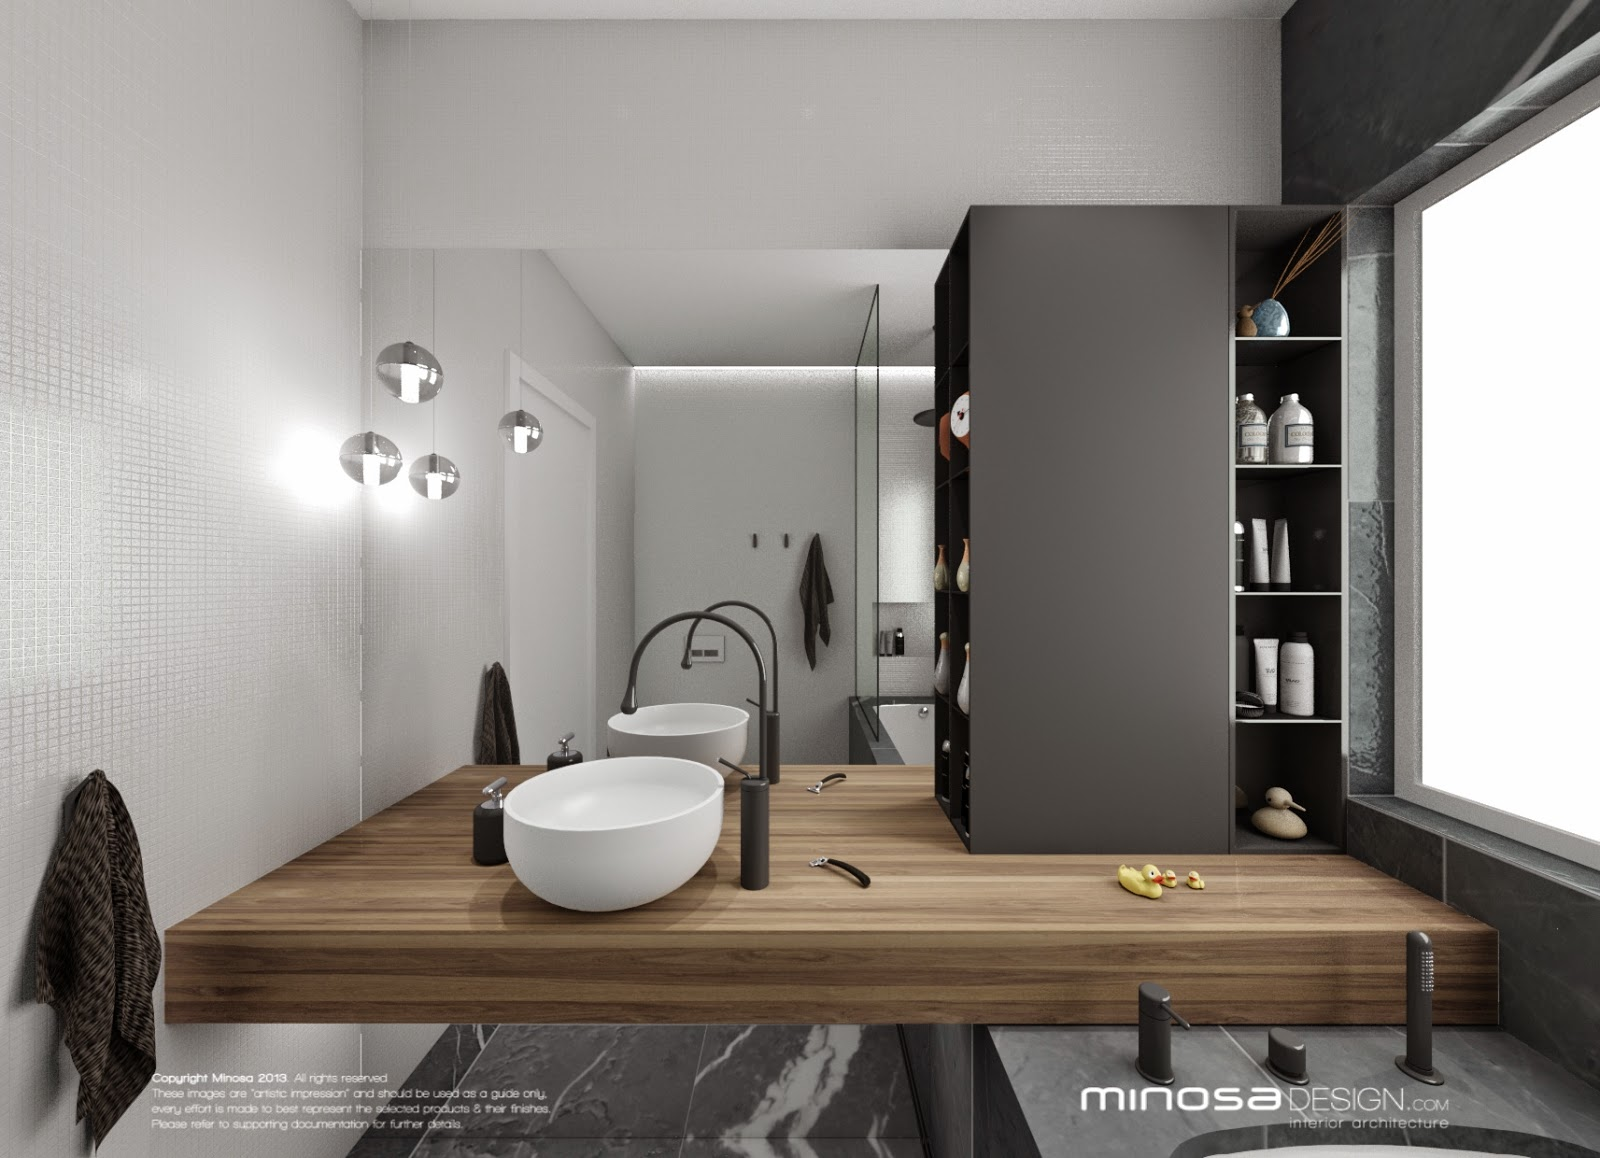 Minosa bathroom design small space feels large for Big bathroom